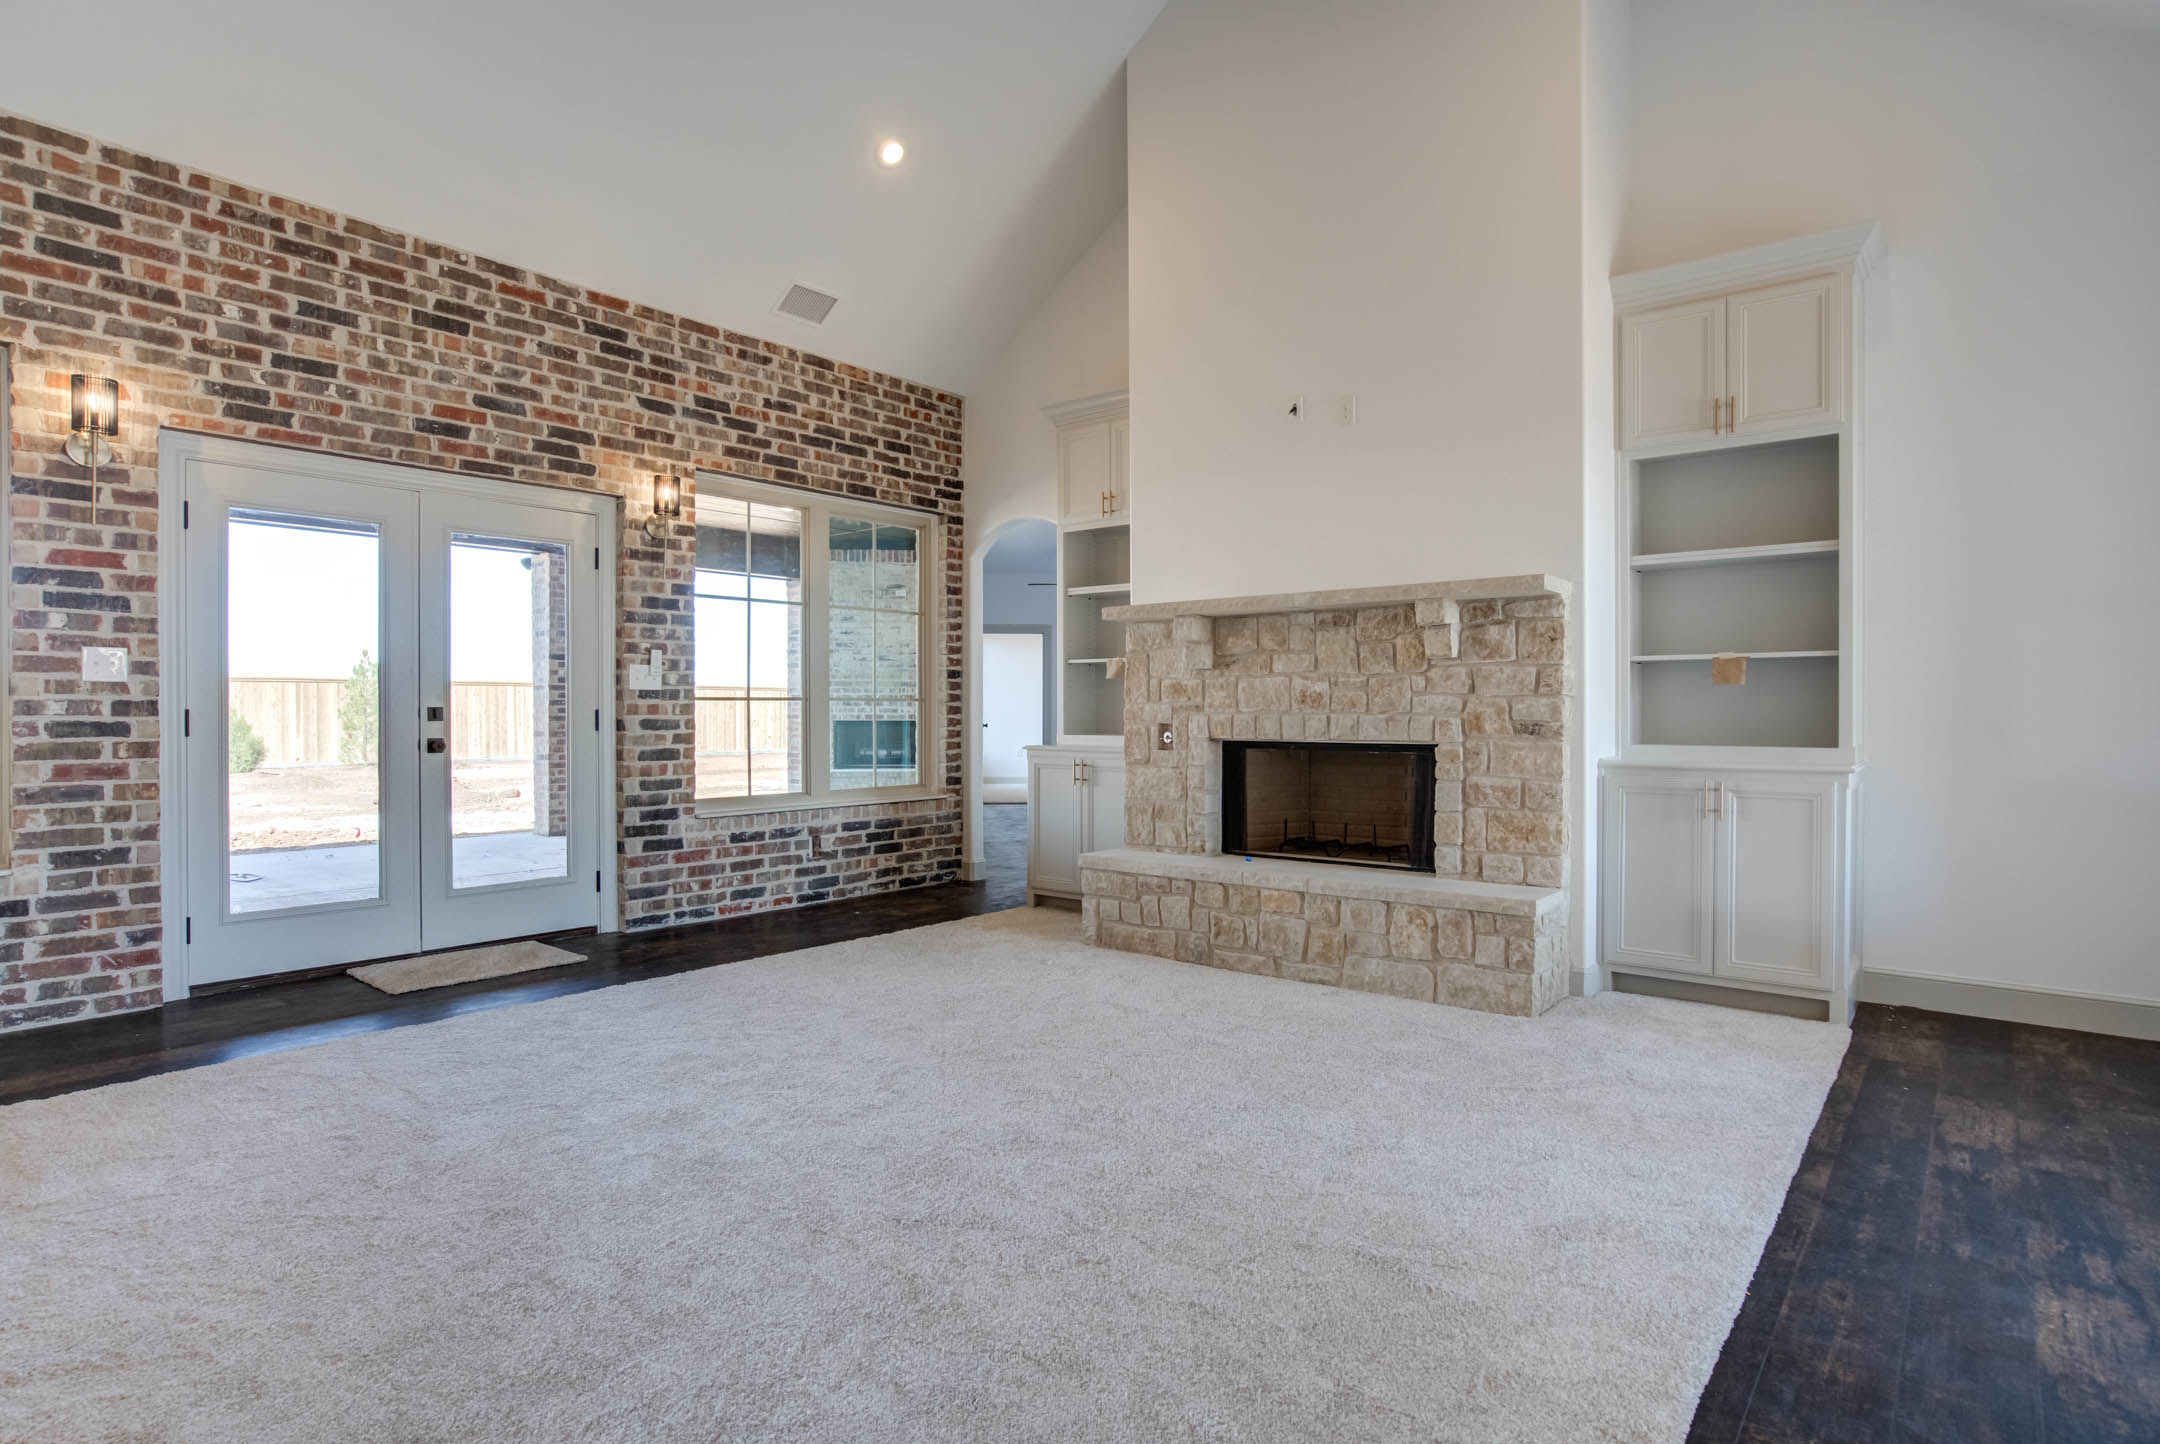 Beautiful living area in new home for sale near Lubbock, Texas.